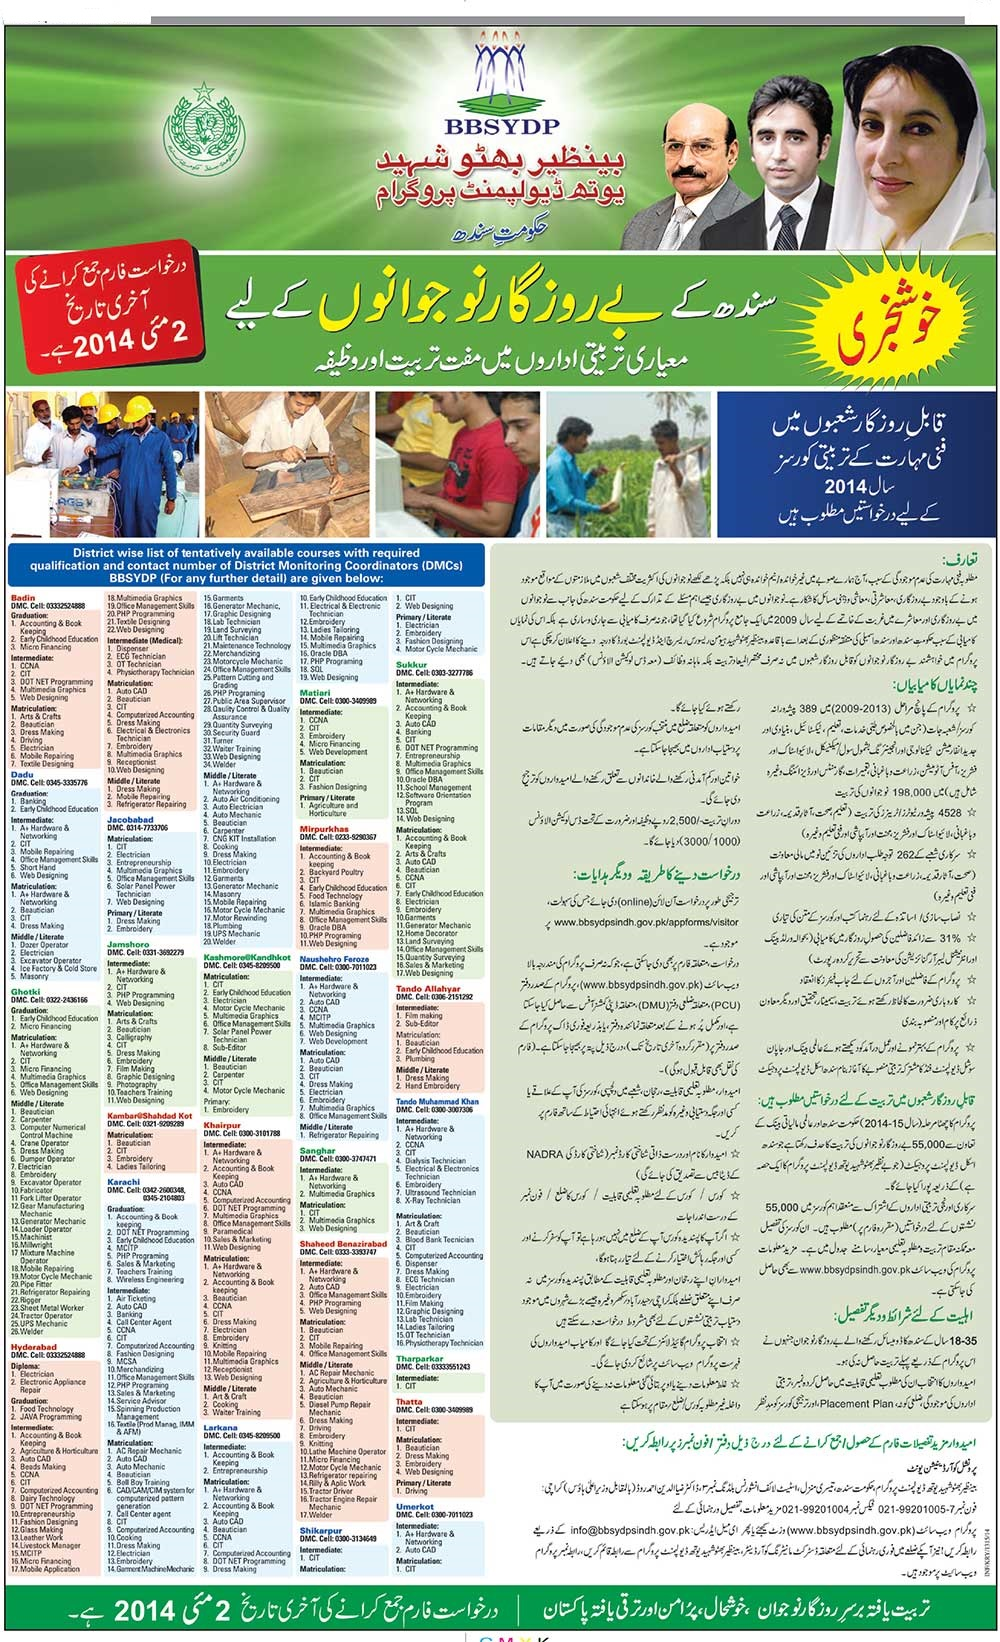 Benazir Bhutto Shaheed Youth Development Program 2014 Online Form